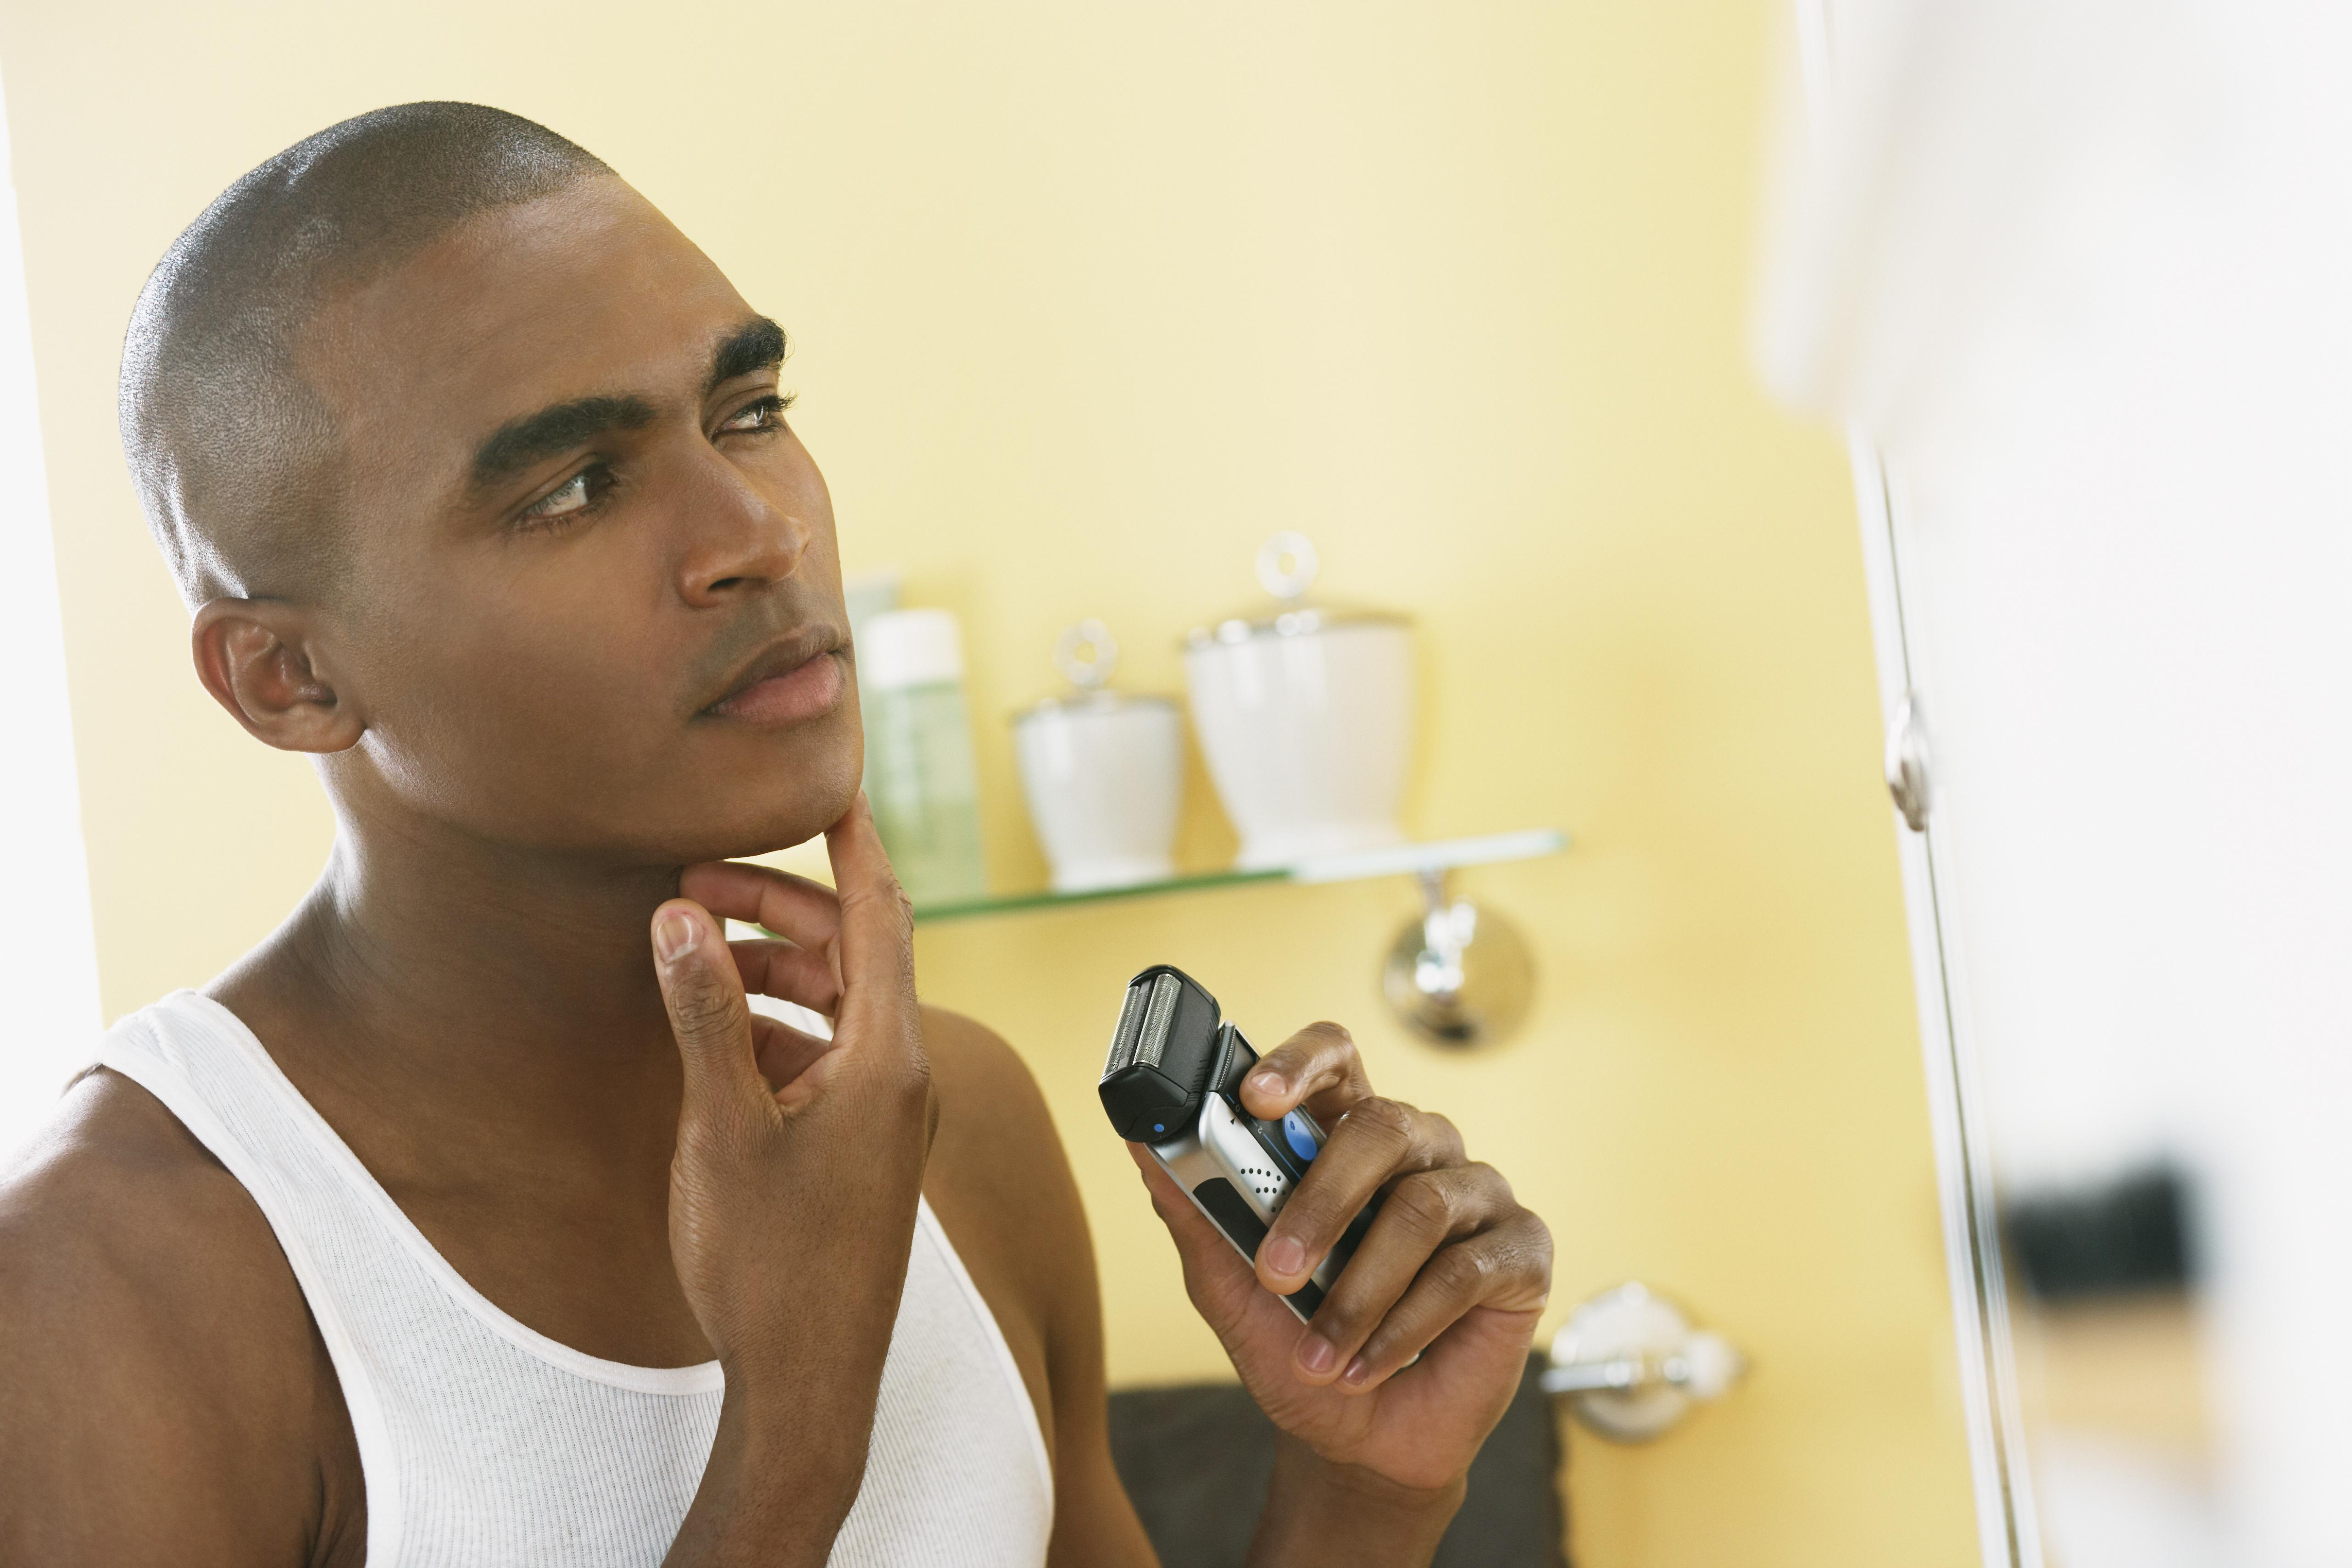 African man shaving with electric razor